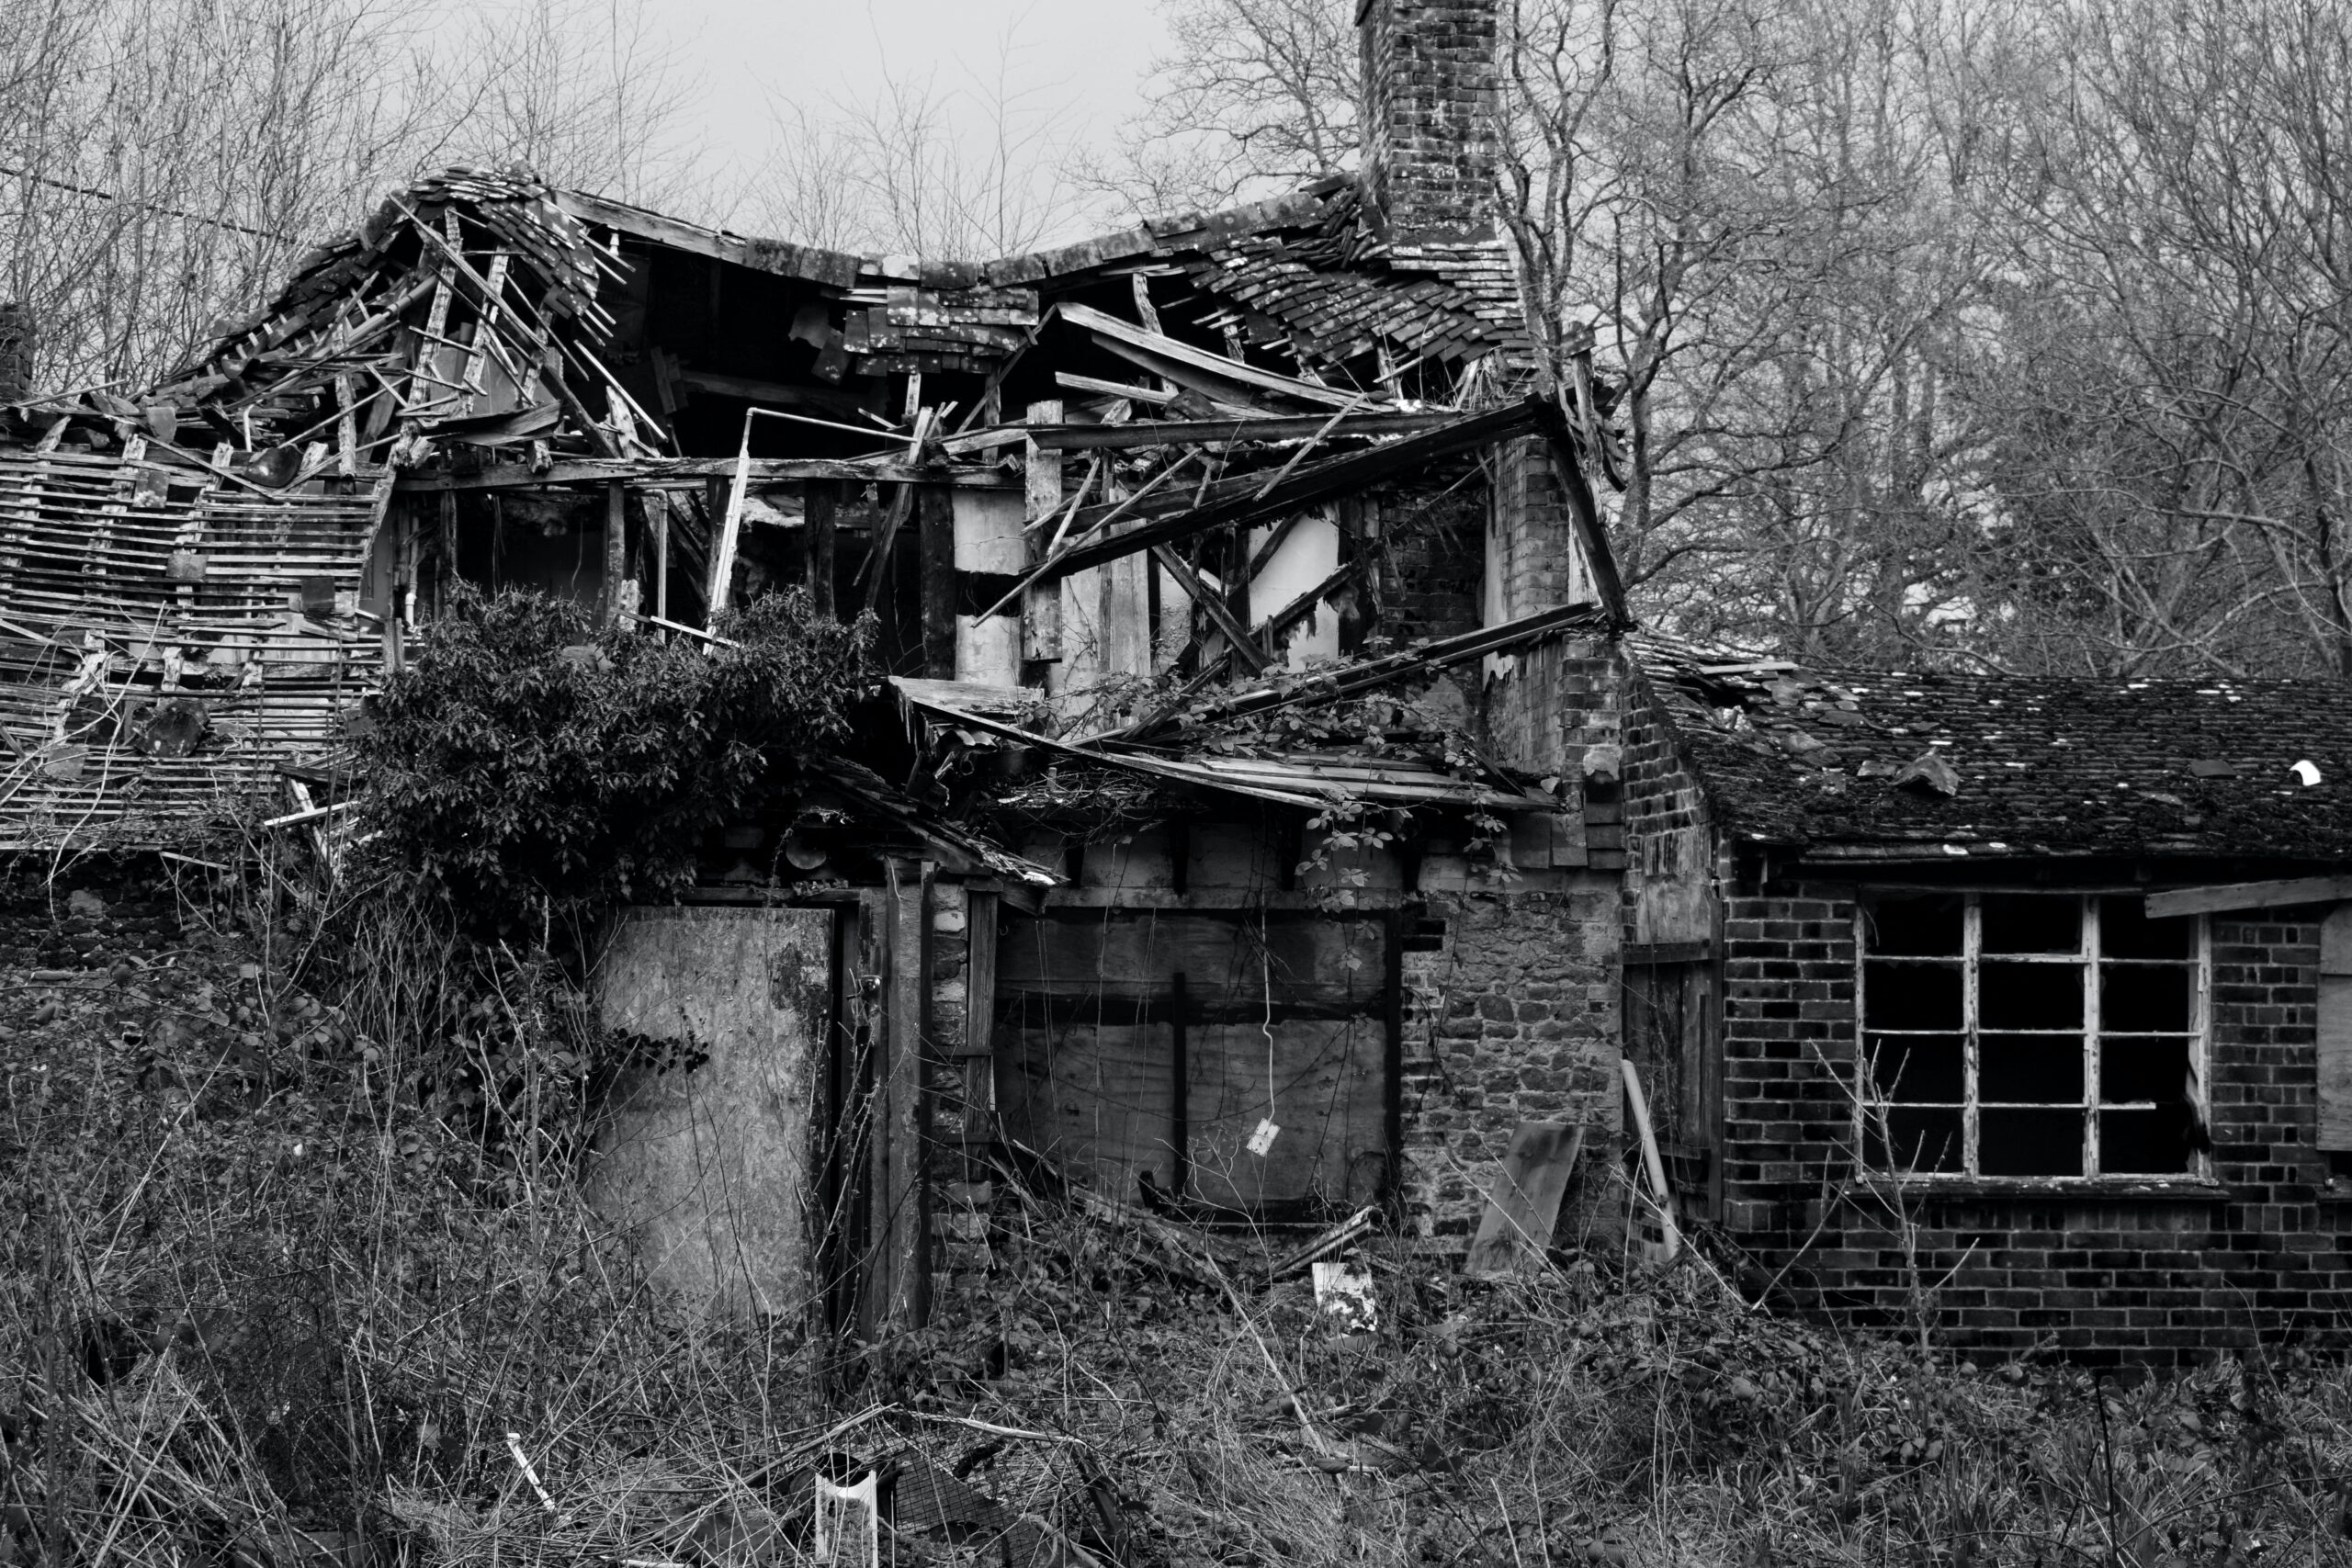 a wrecked home black & white picture